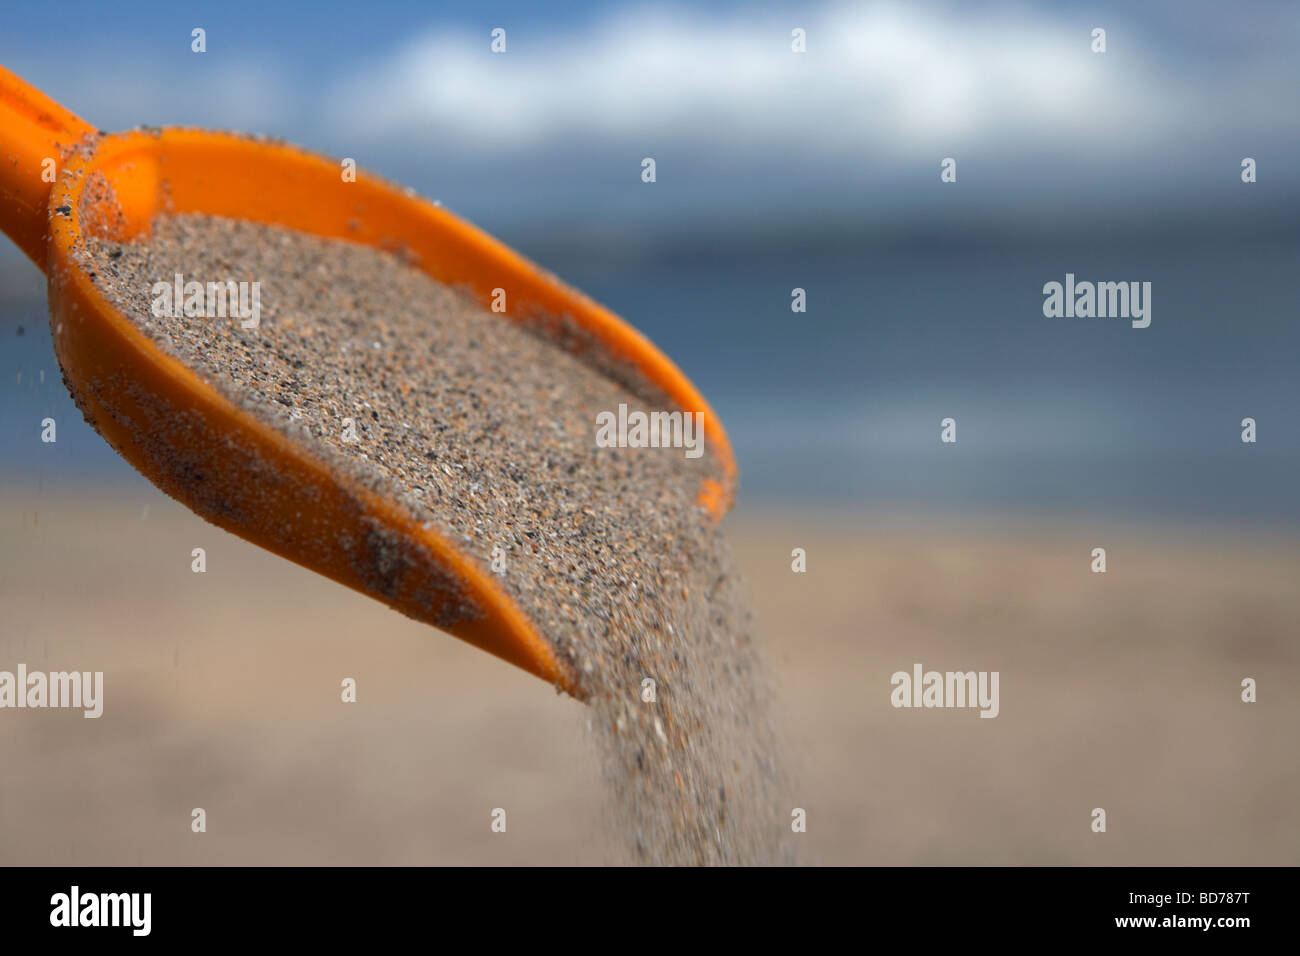 grains of sand flowing off a childs toy plastic spade on a beach in the uk - Stock Image